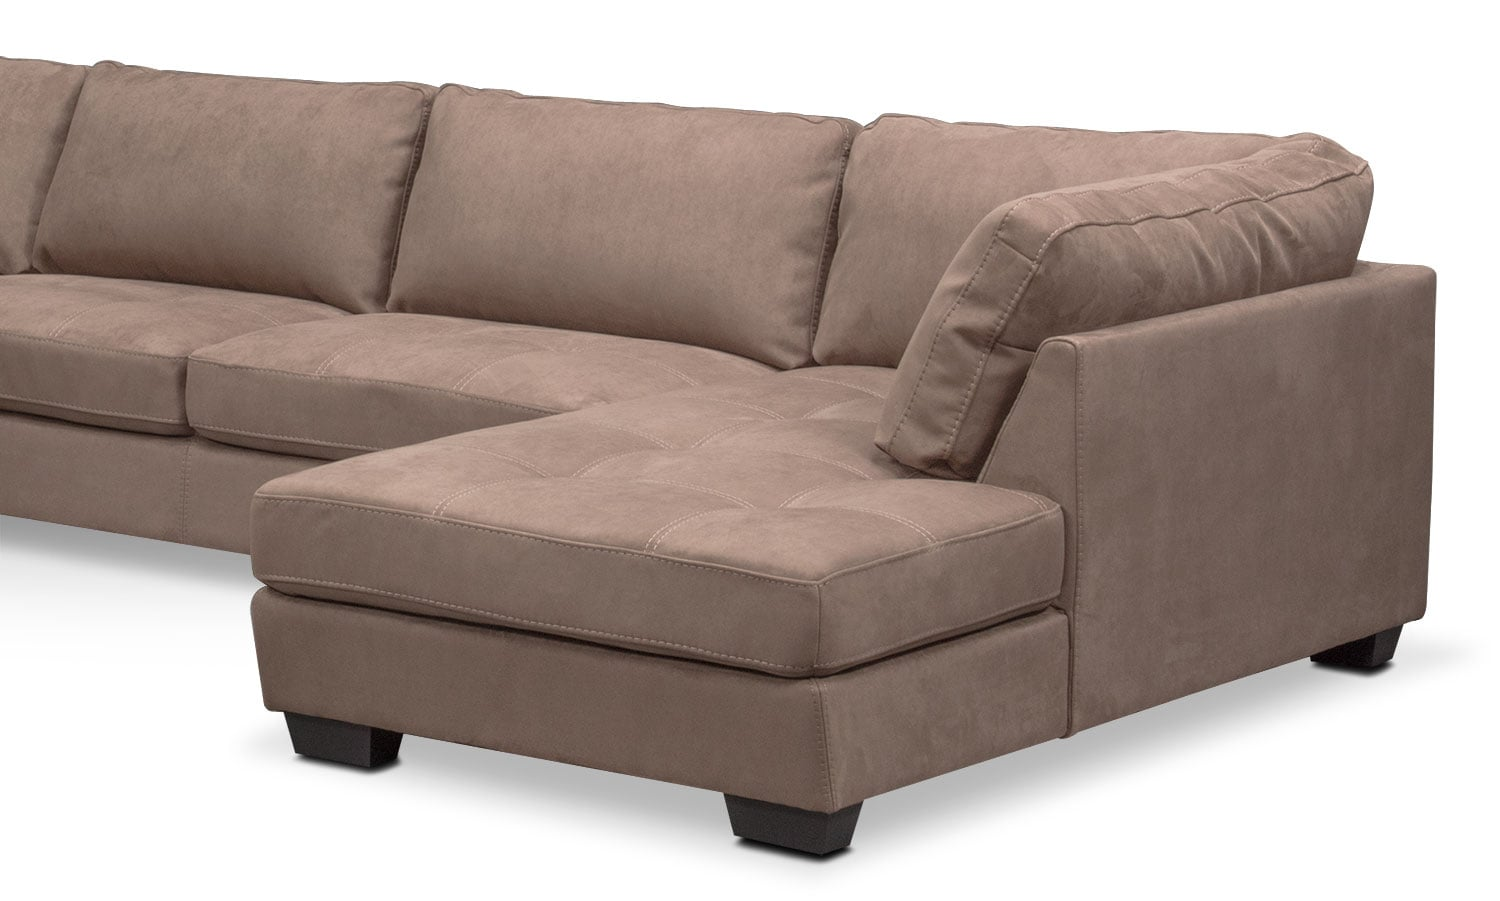 Santana 4 piece sectional with right facing chaise taupe for 4 piece sectional sofa with chaise